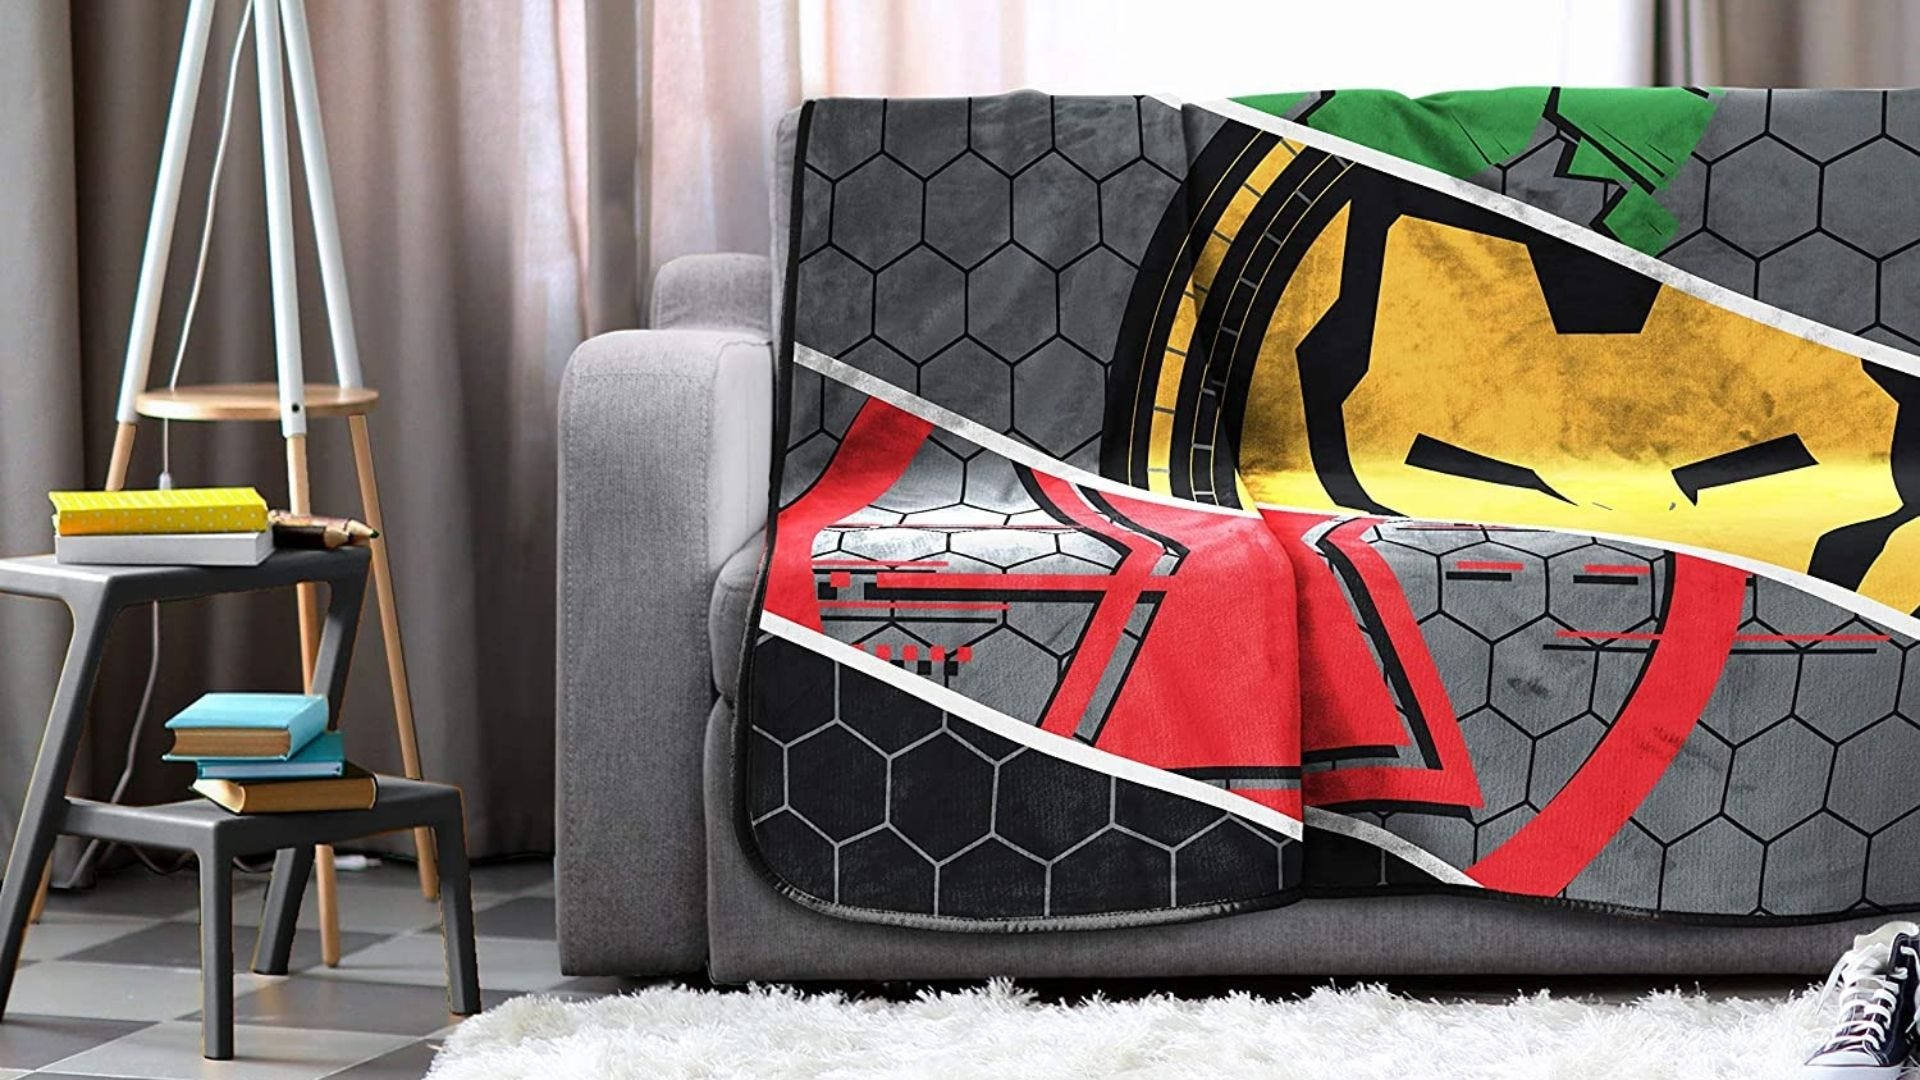 A Marvel blanket on a couch